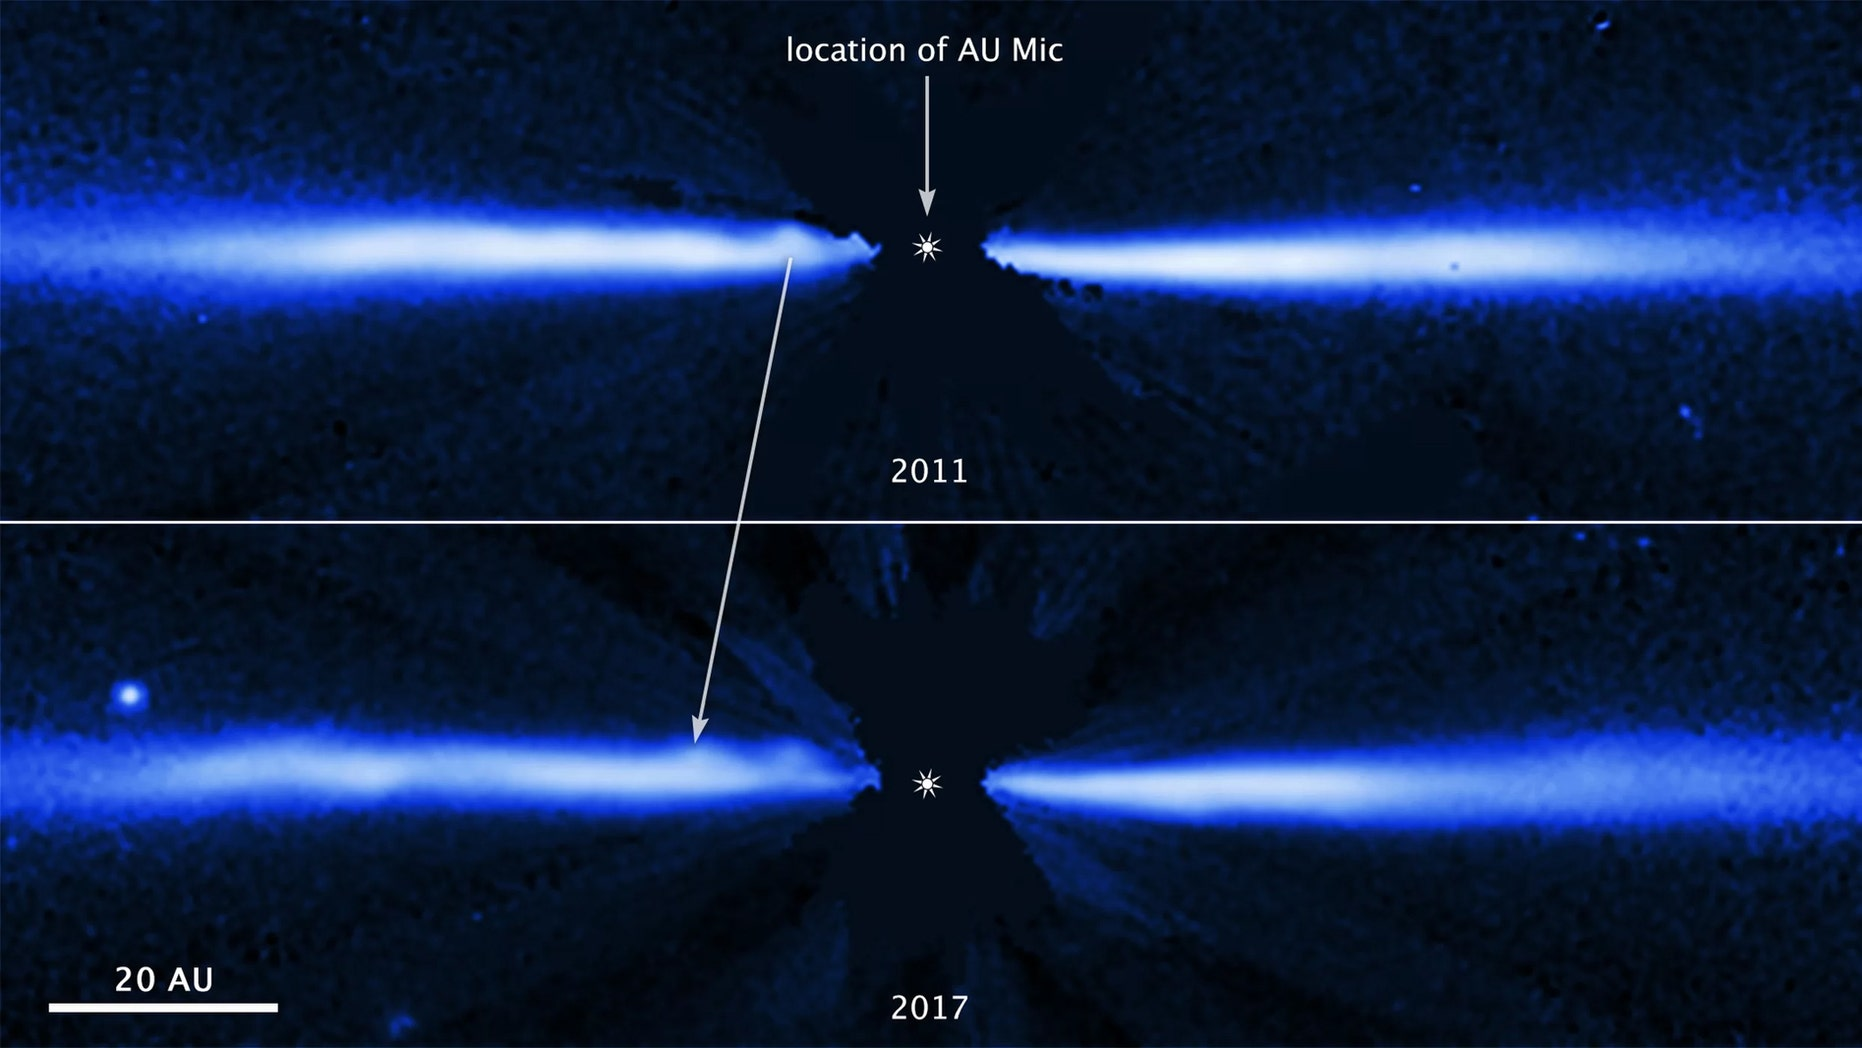 Hubble Space Telescope images of the debris disk surrounding a star called AU Microscopii show the same structure migrating outward. Credit: NASA, ESA, J. Wisniewski (University of Oklahoma), C. Grady (Eureka Scientific) and G. Schneider (Steward Observatory)